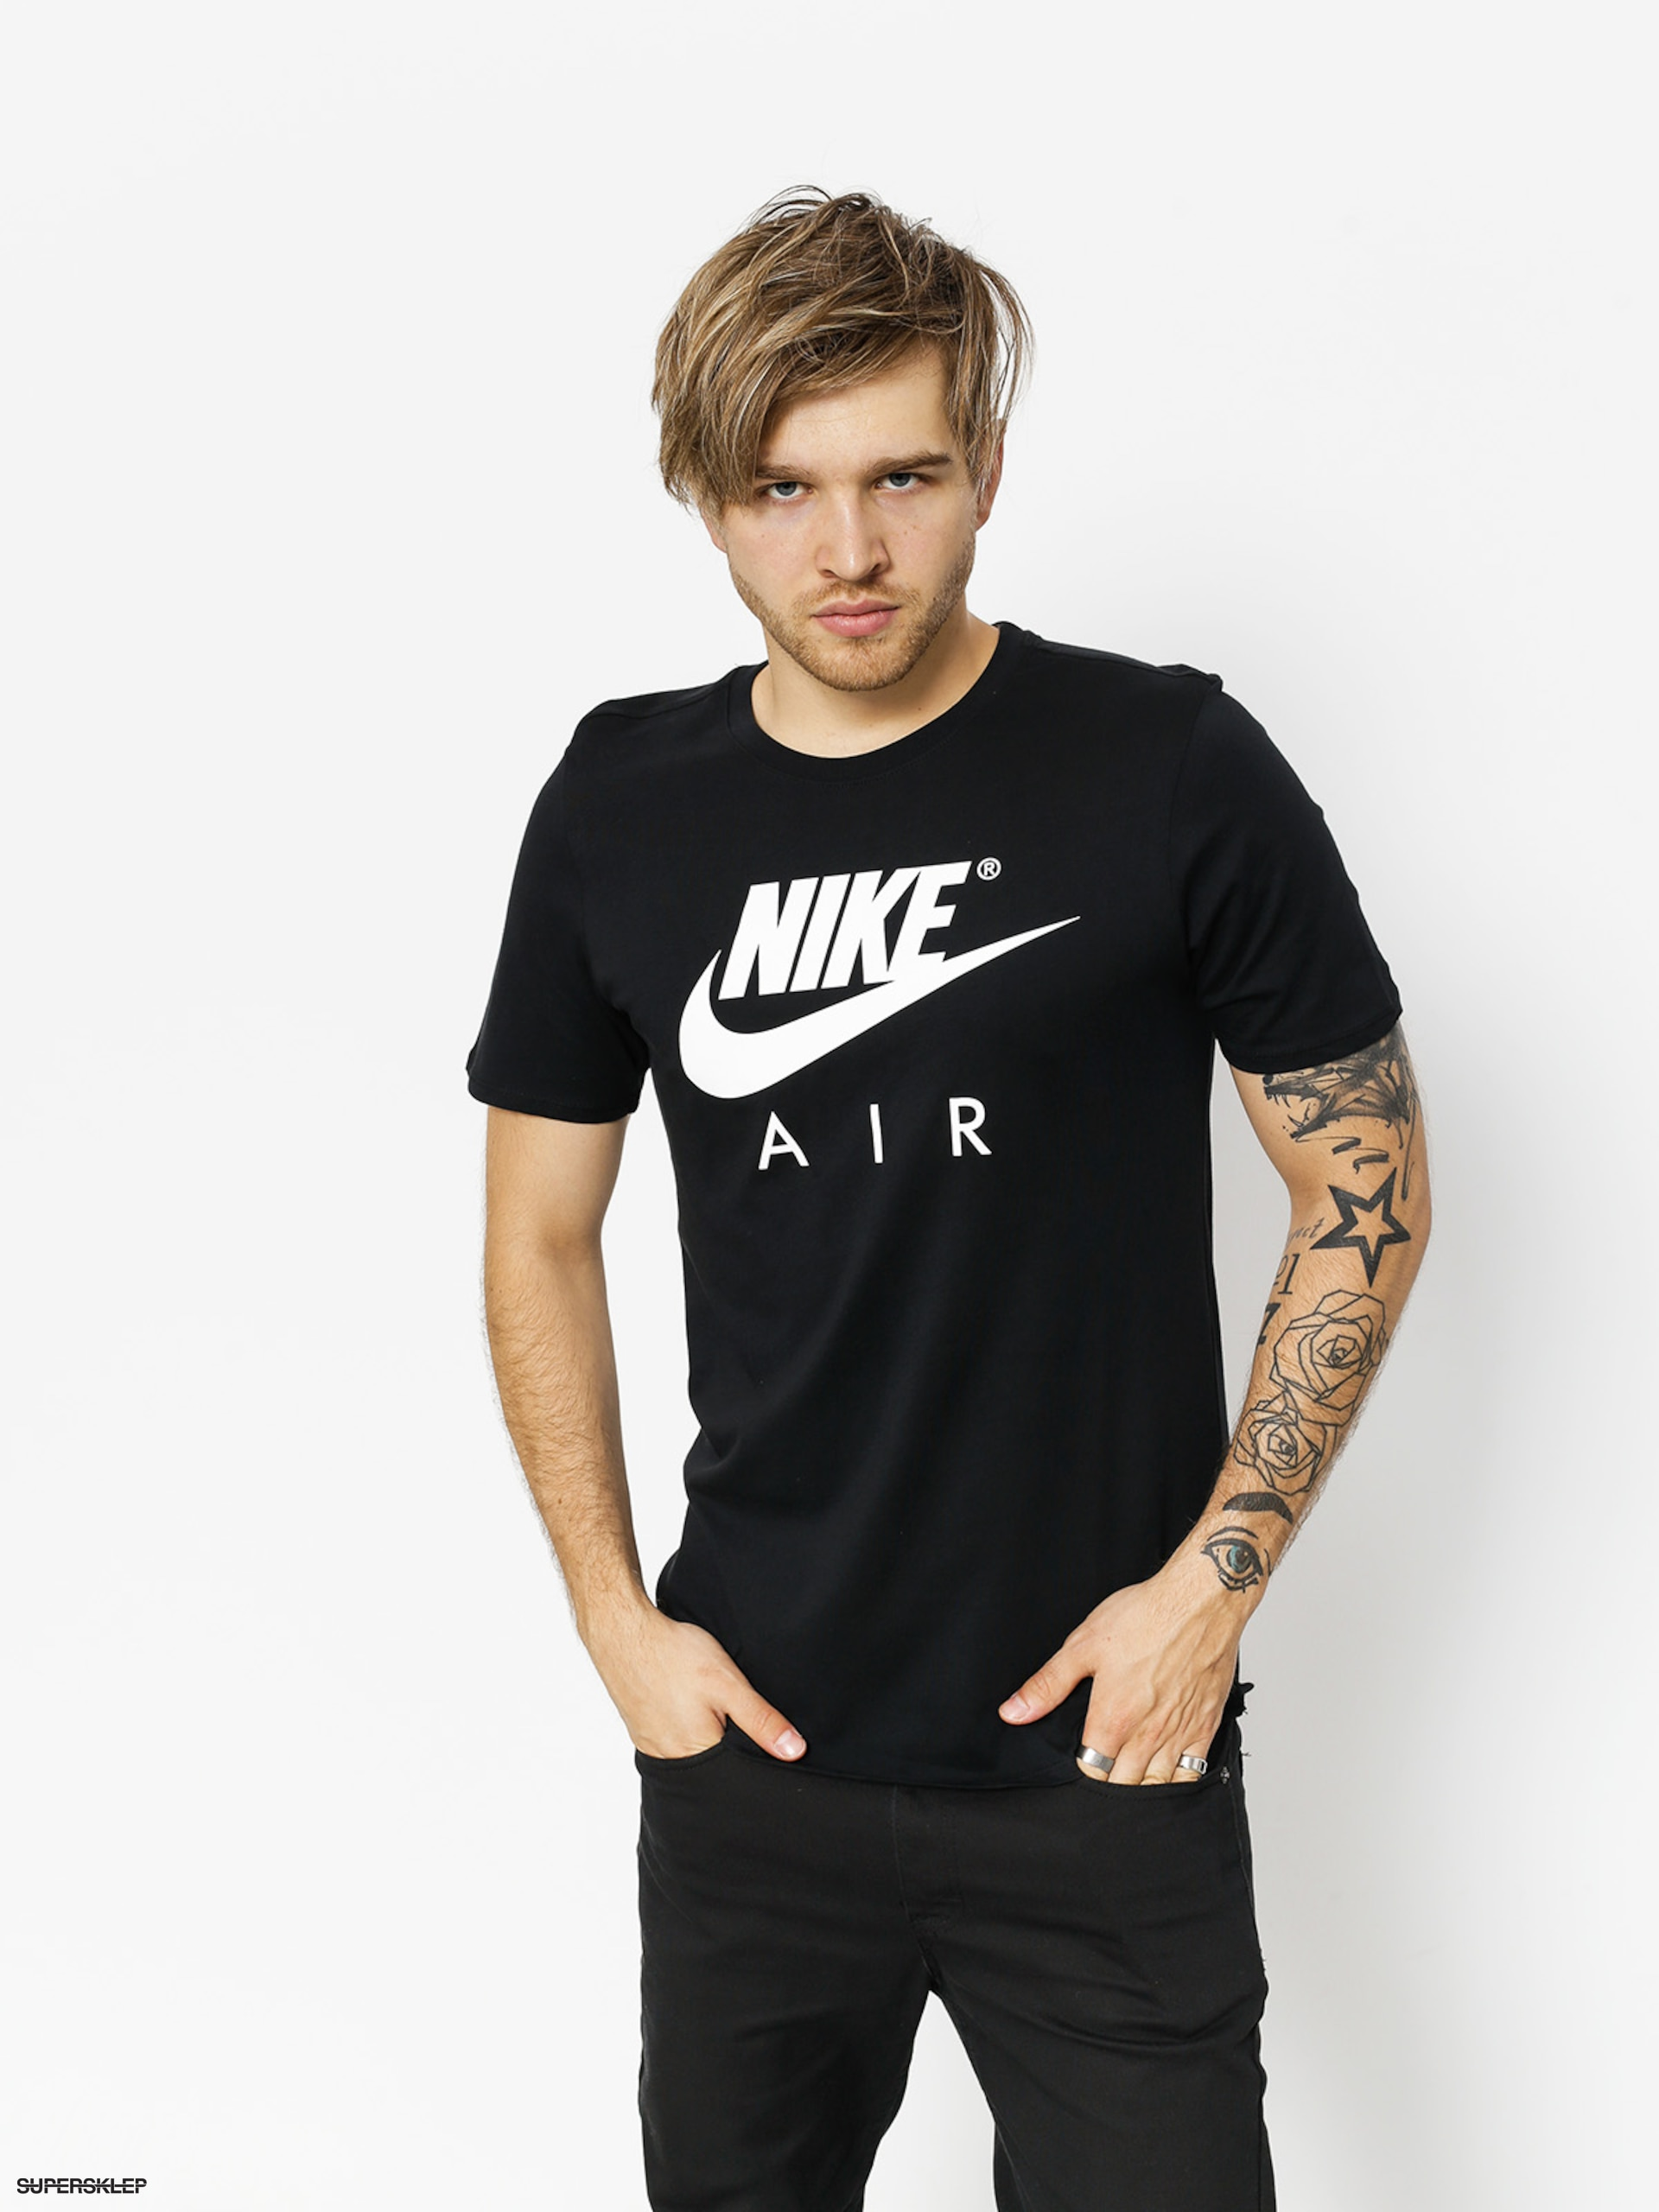 T-shirt Nike Tee Ss Air 3 (black/white)